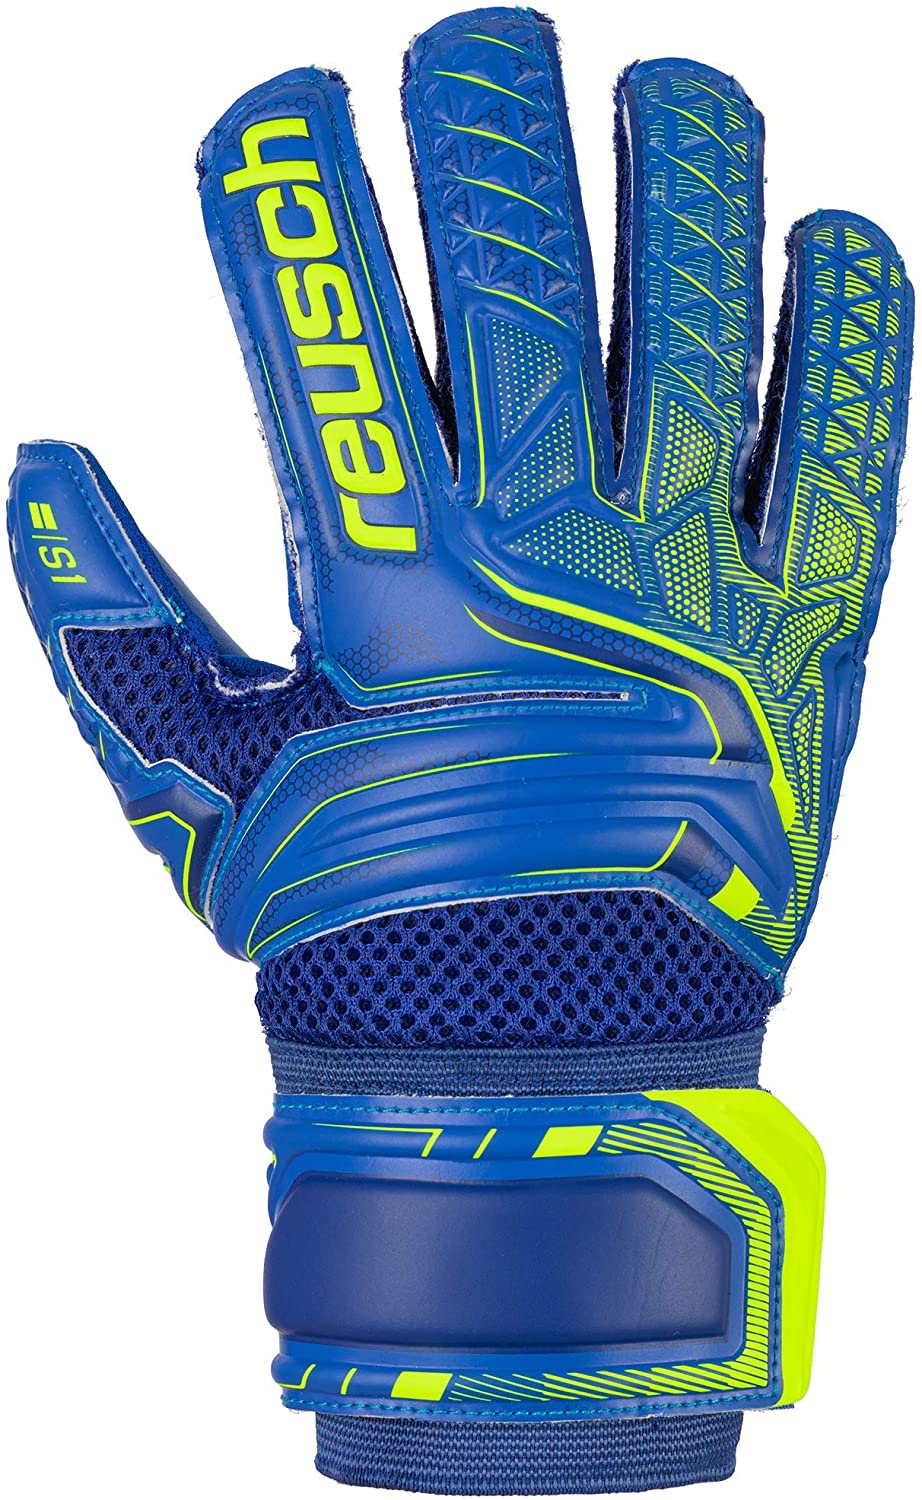 Reusch Attrakt S1 Junior Goalkeeper Glove